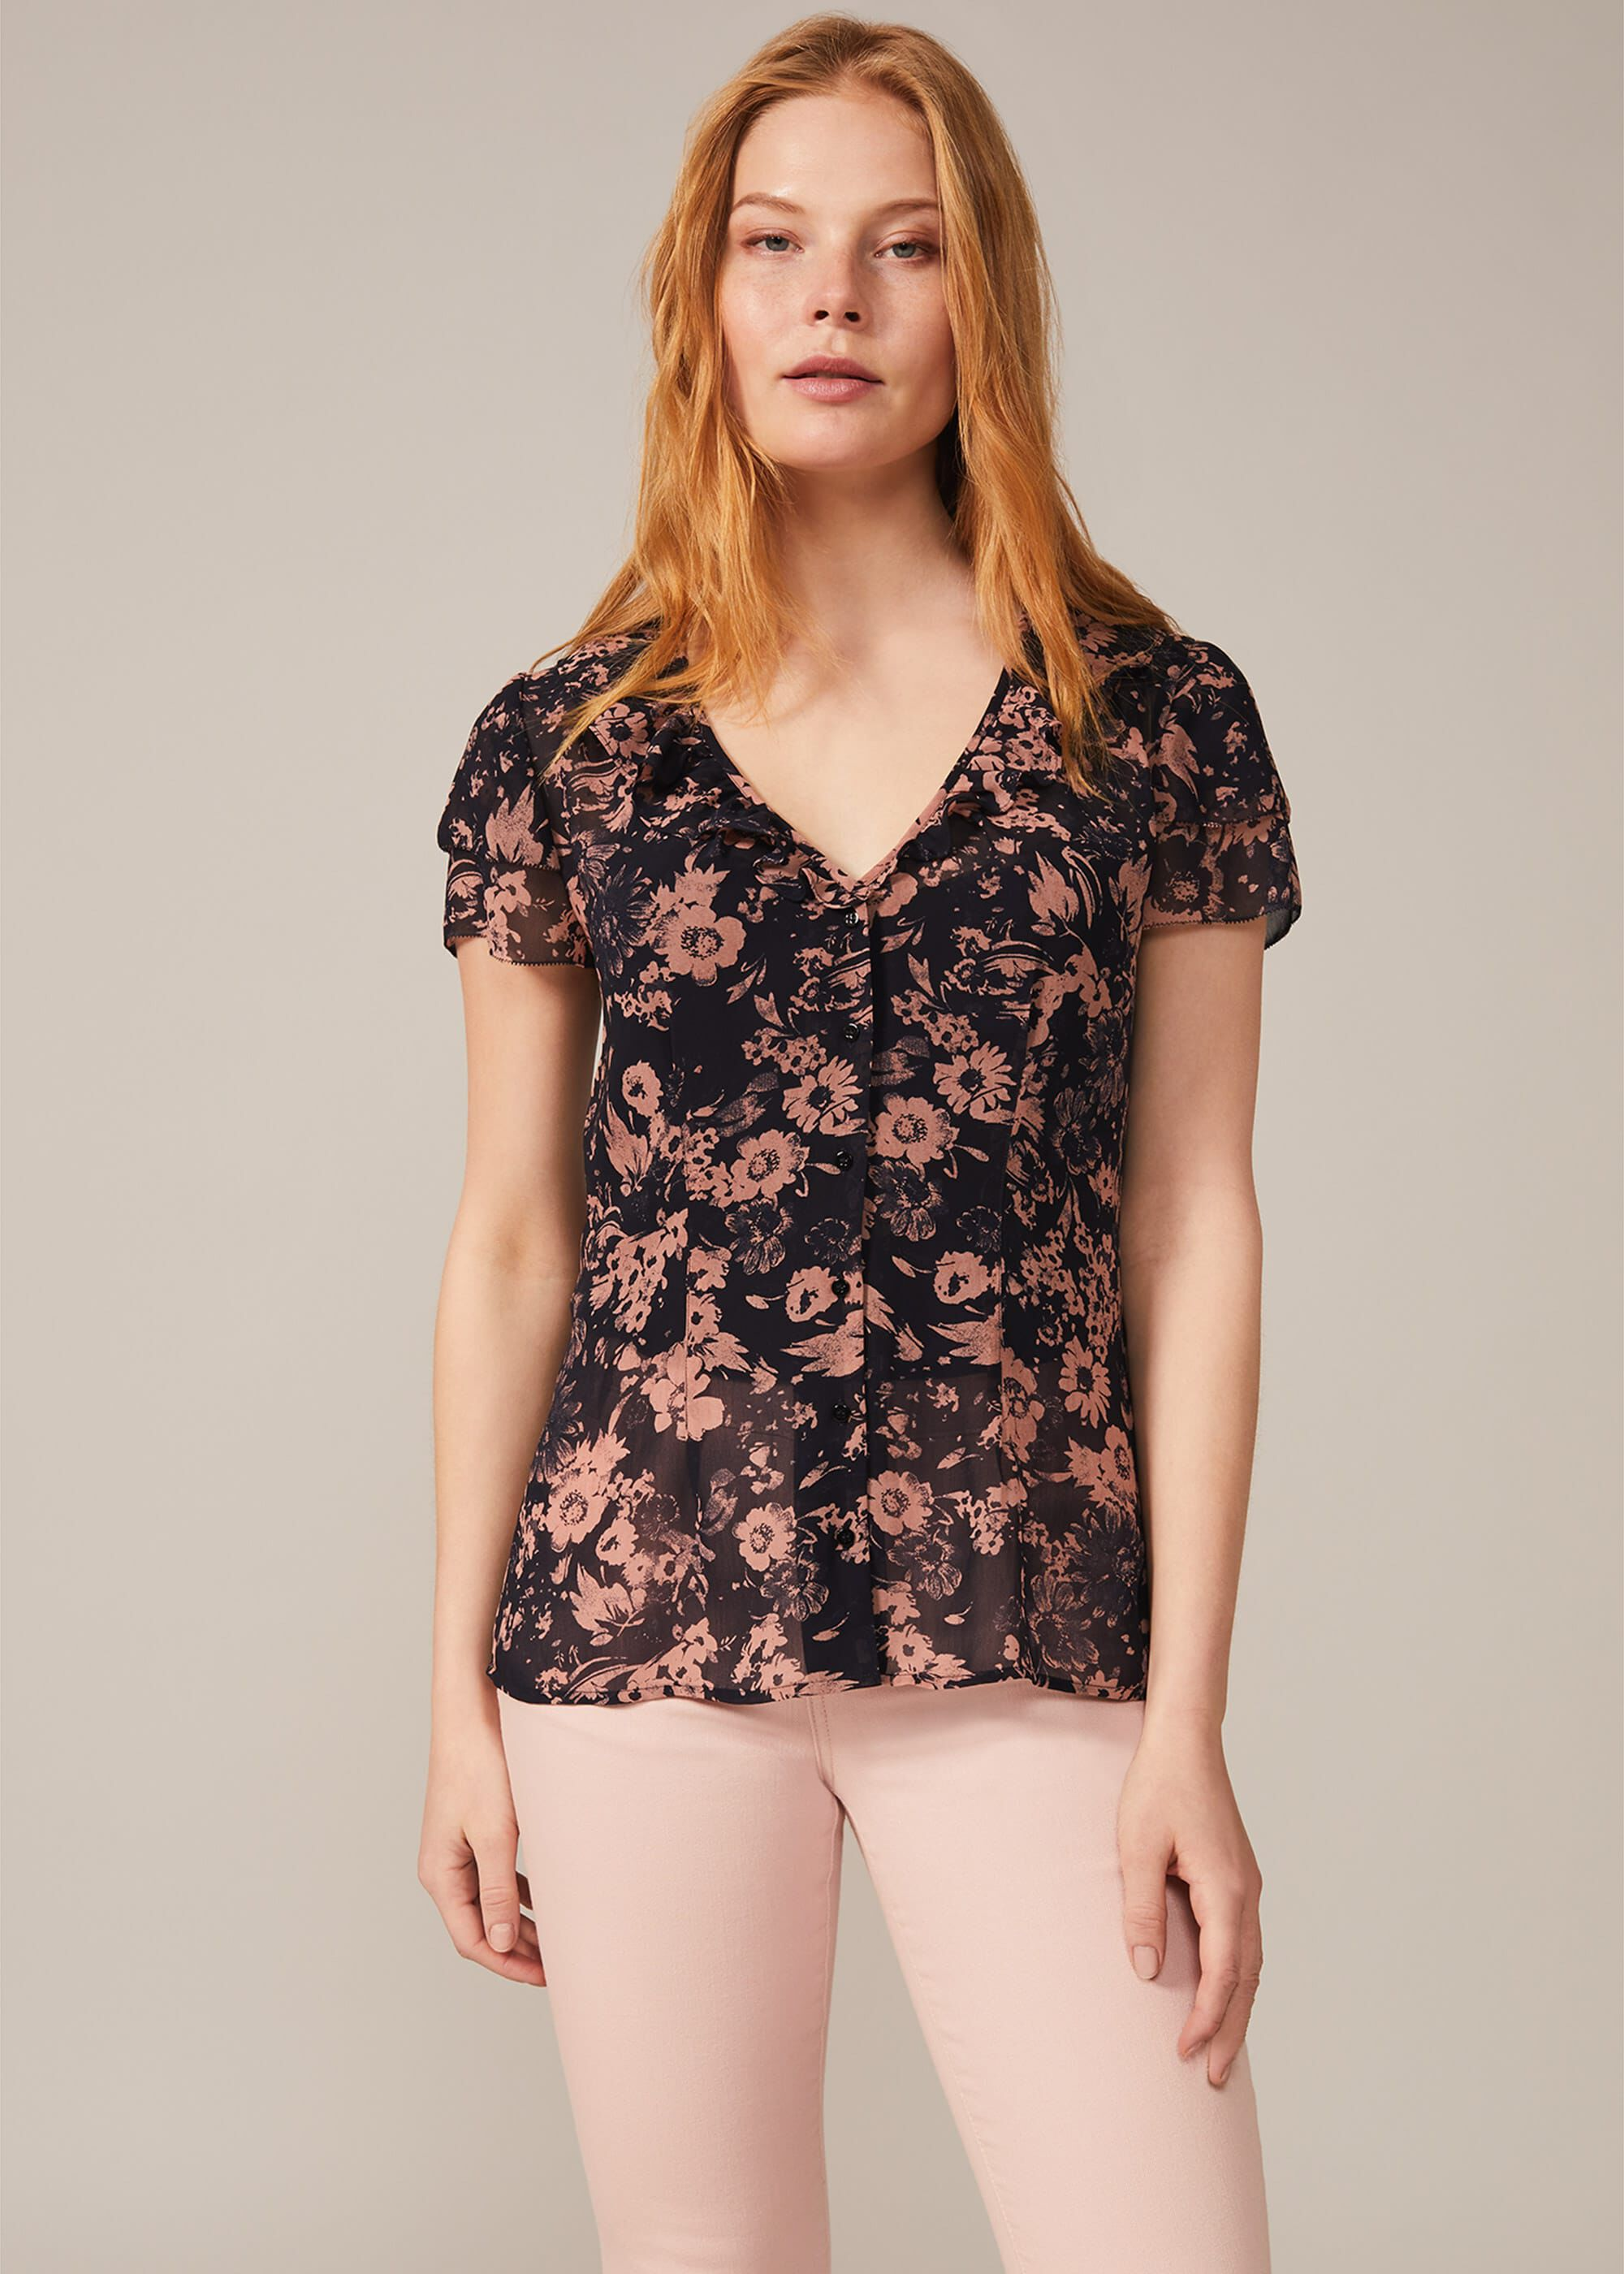 Phase Eight Verena Floral Chiffon Blouse, Blue, Blouse